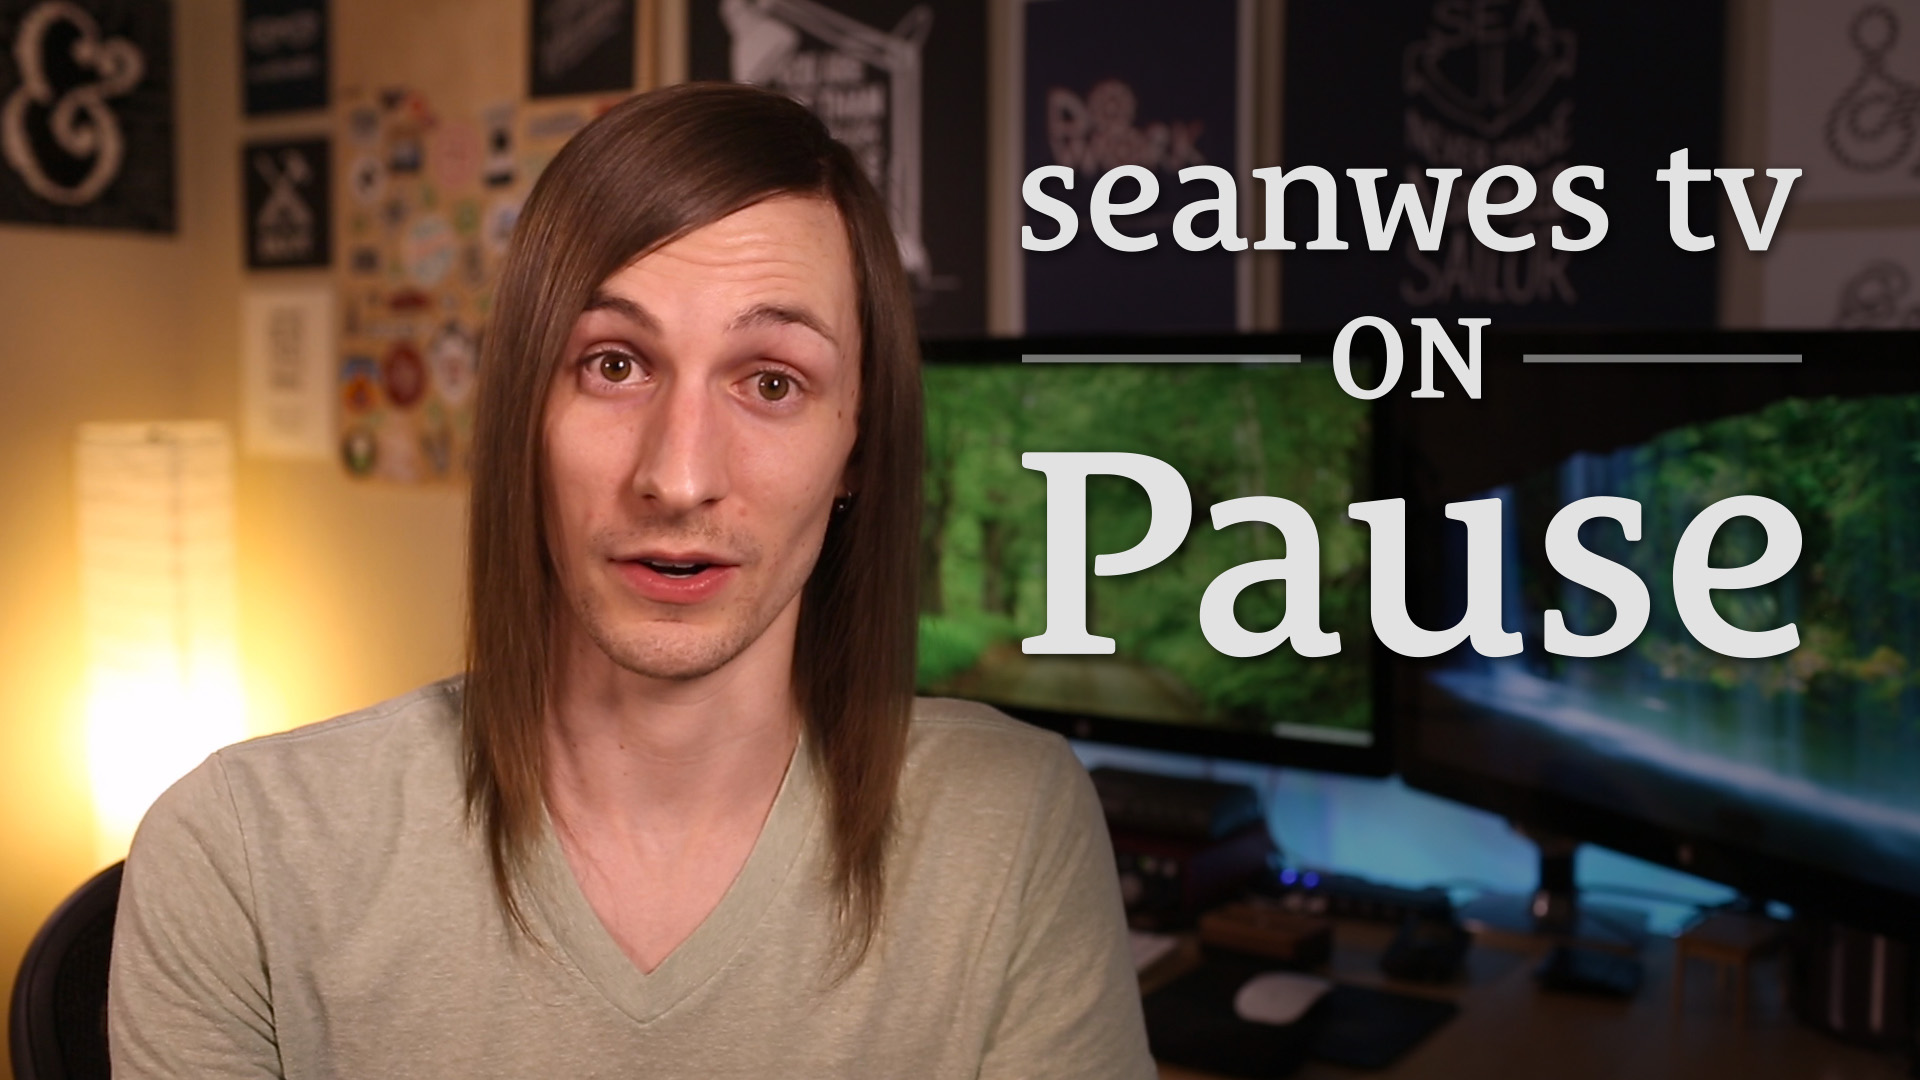 seanwes tv Going on Pause for Supercharge Your Writing